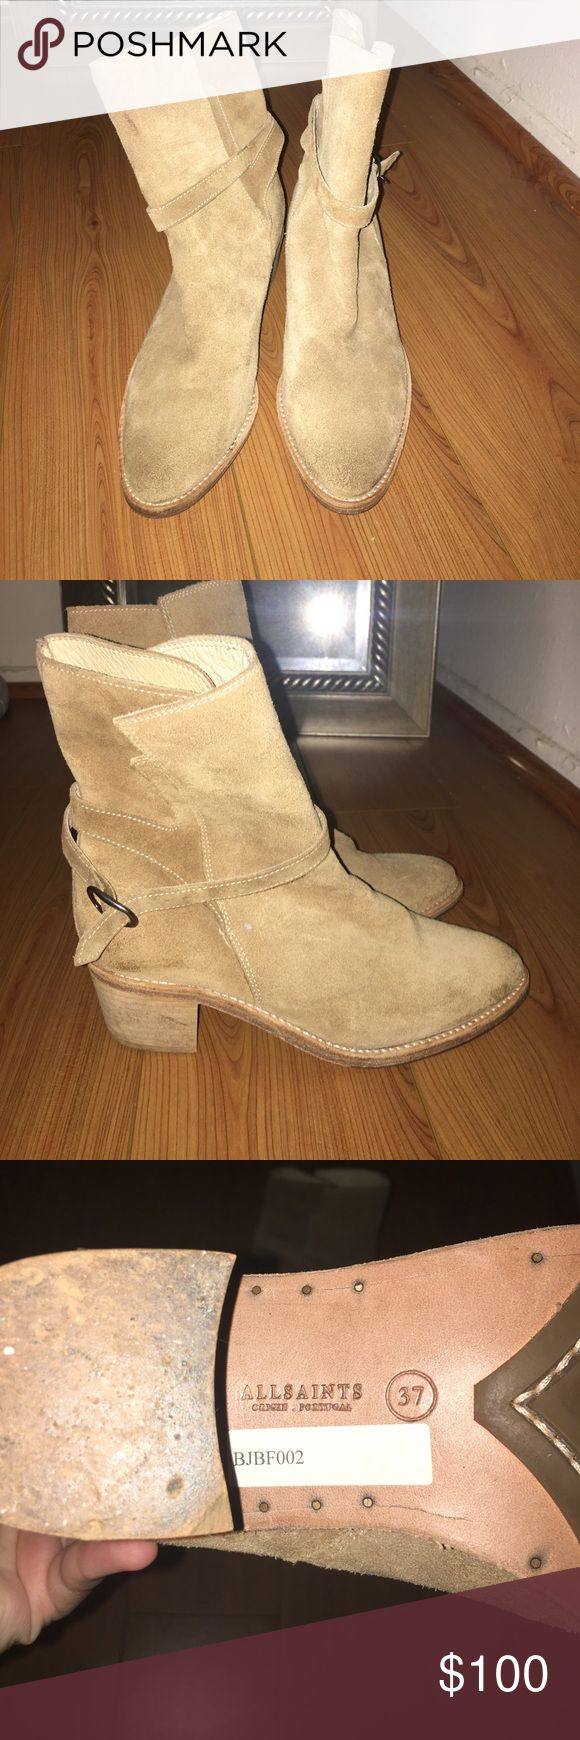 All Saints Jodhpur Boots Worn a few times but in still in good condition. Has a few marks on the suede as pictured but not very noticeable when worn All Saints Shoes Ankle Boots & Booties